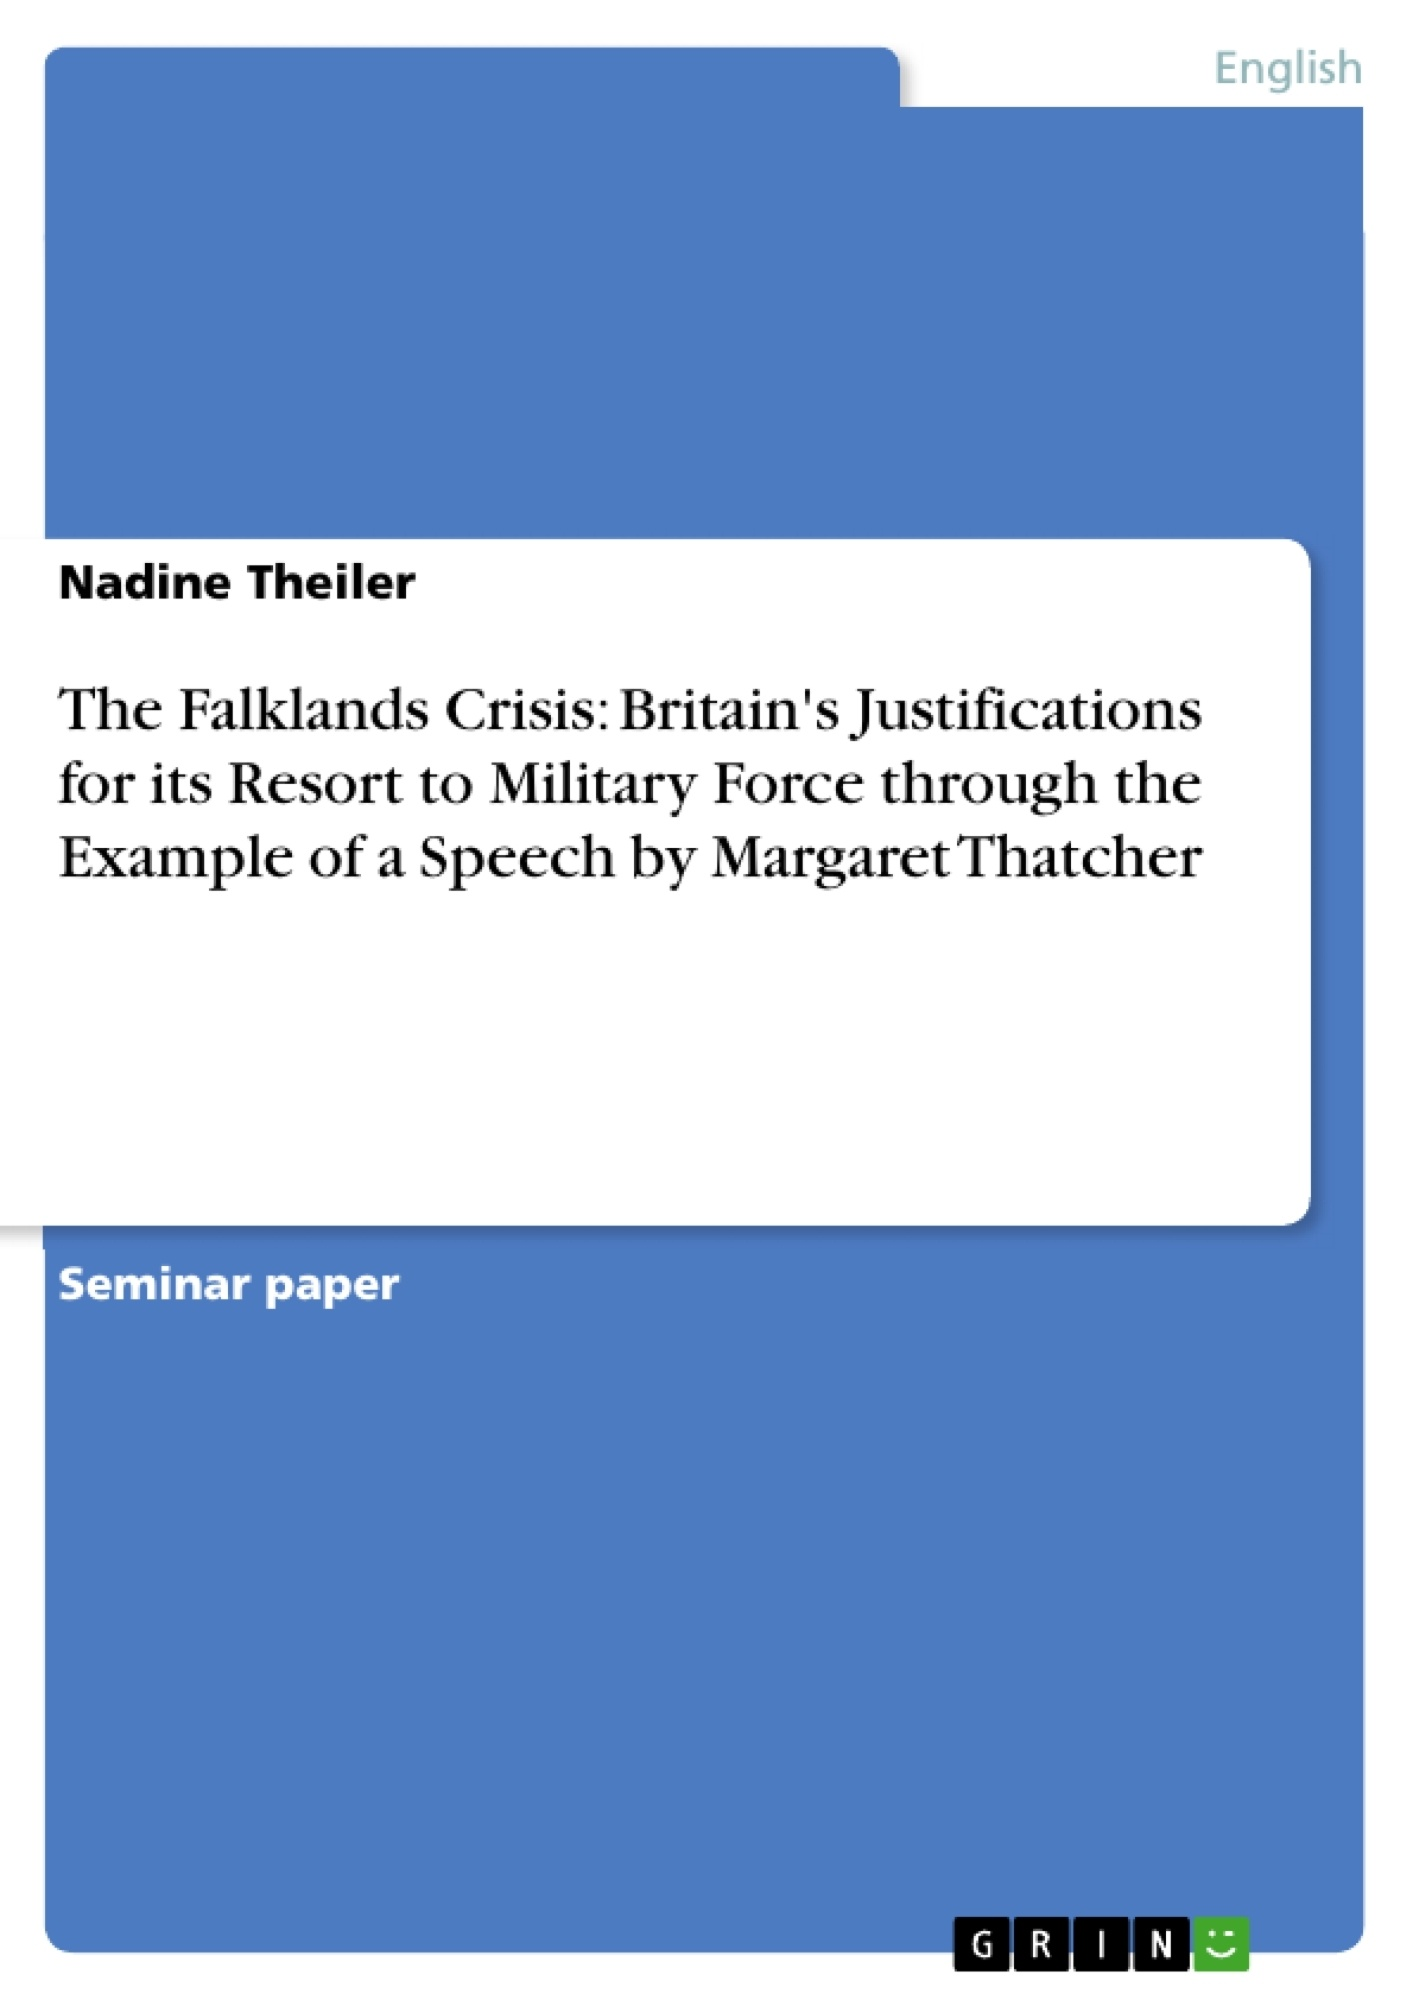 Title: The Falklands Crisis: Britain's Justifications for its Resort to Military Force through the Example of a Speech by Margaret Thatcher